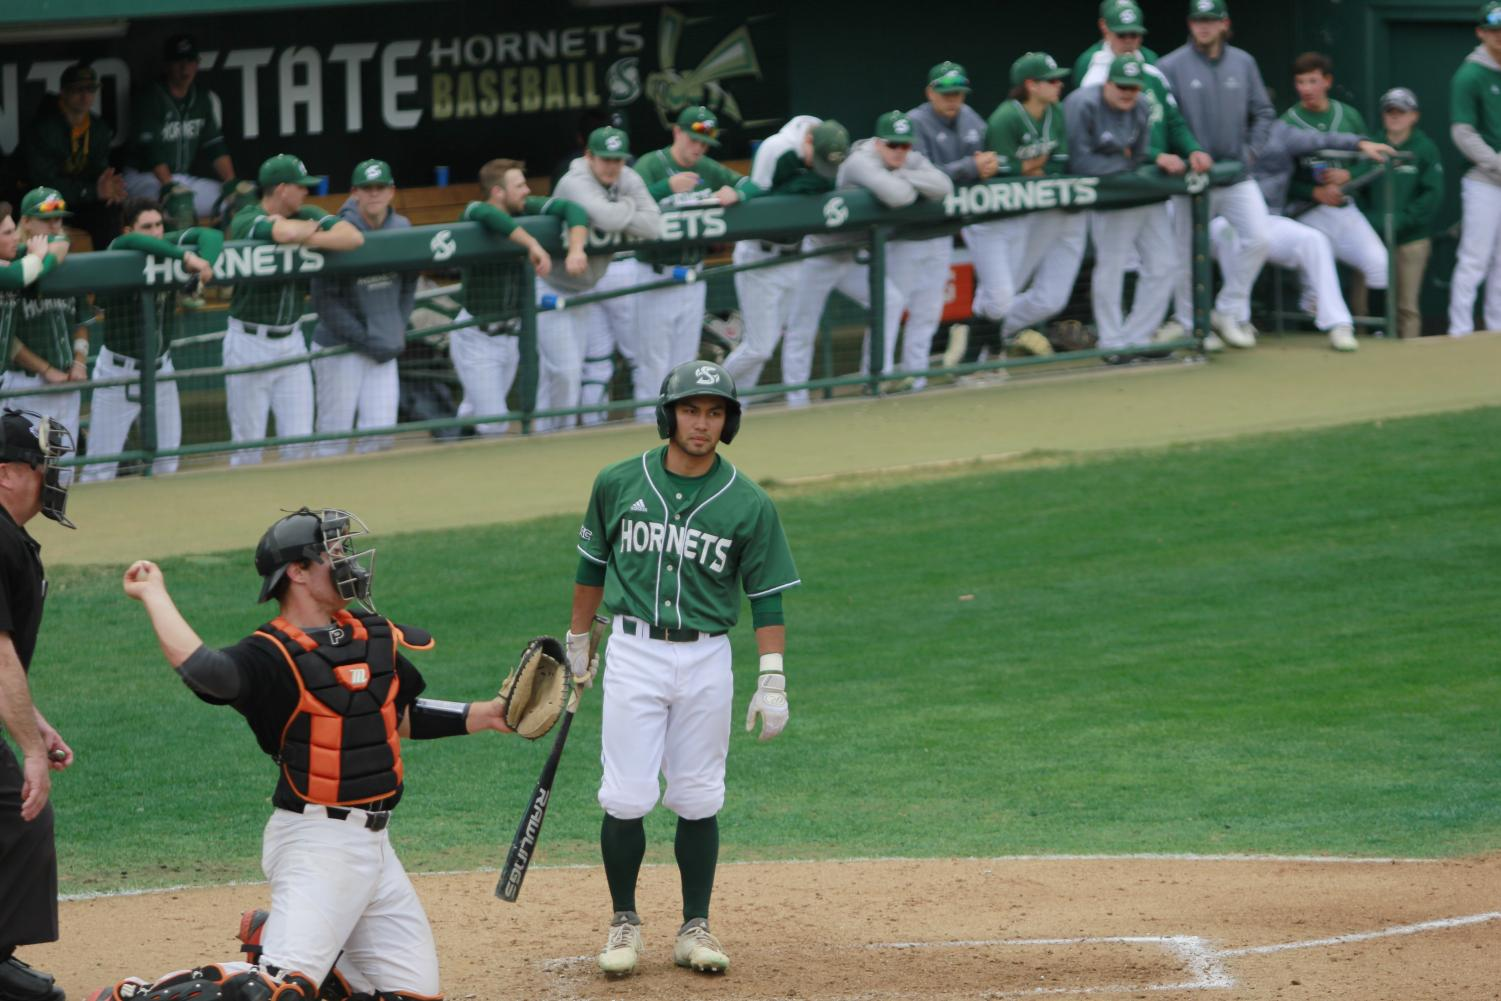 Sac State sophomore infielder Keith Torres steps away from the plate in between pitches in a 6-2 loss to Pacific on Feb. 24 at John Smith Field. Torres hit well over the weekend going 6-17 against the Tigers over four games.